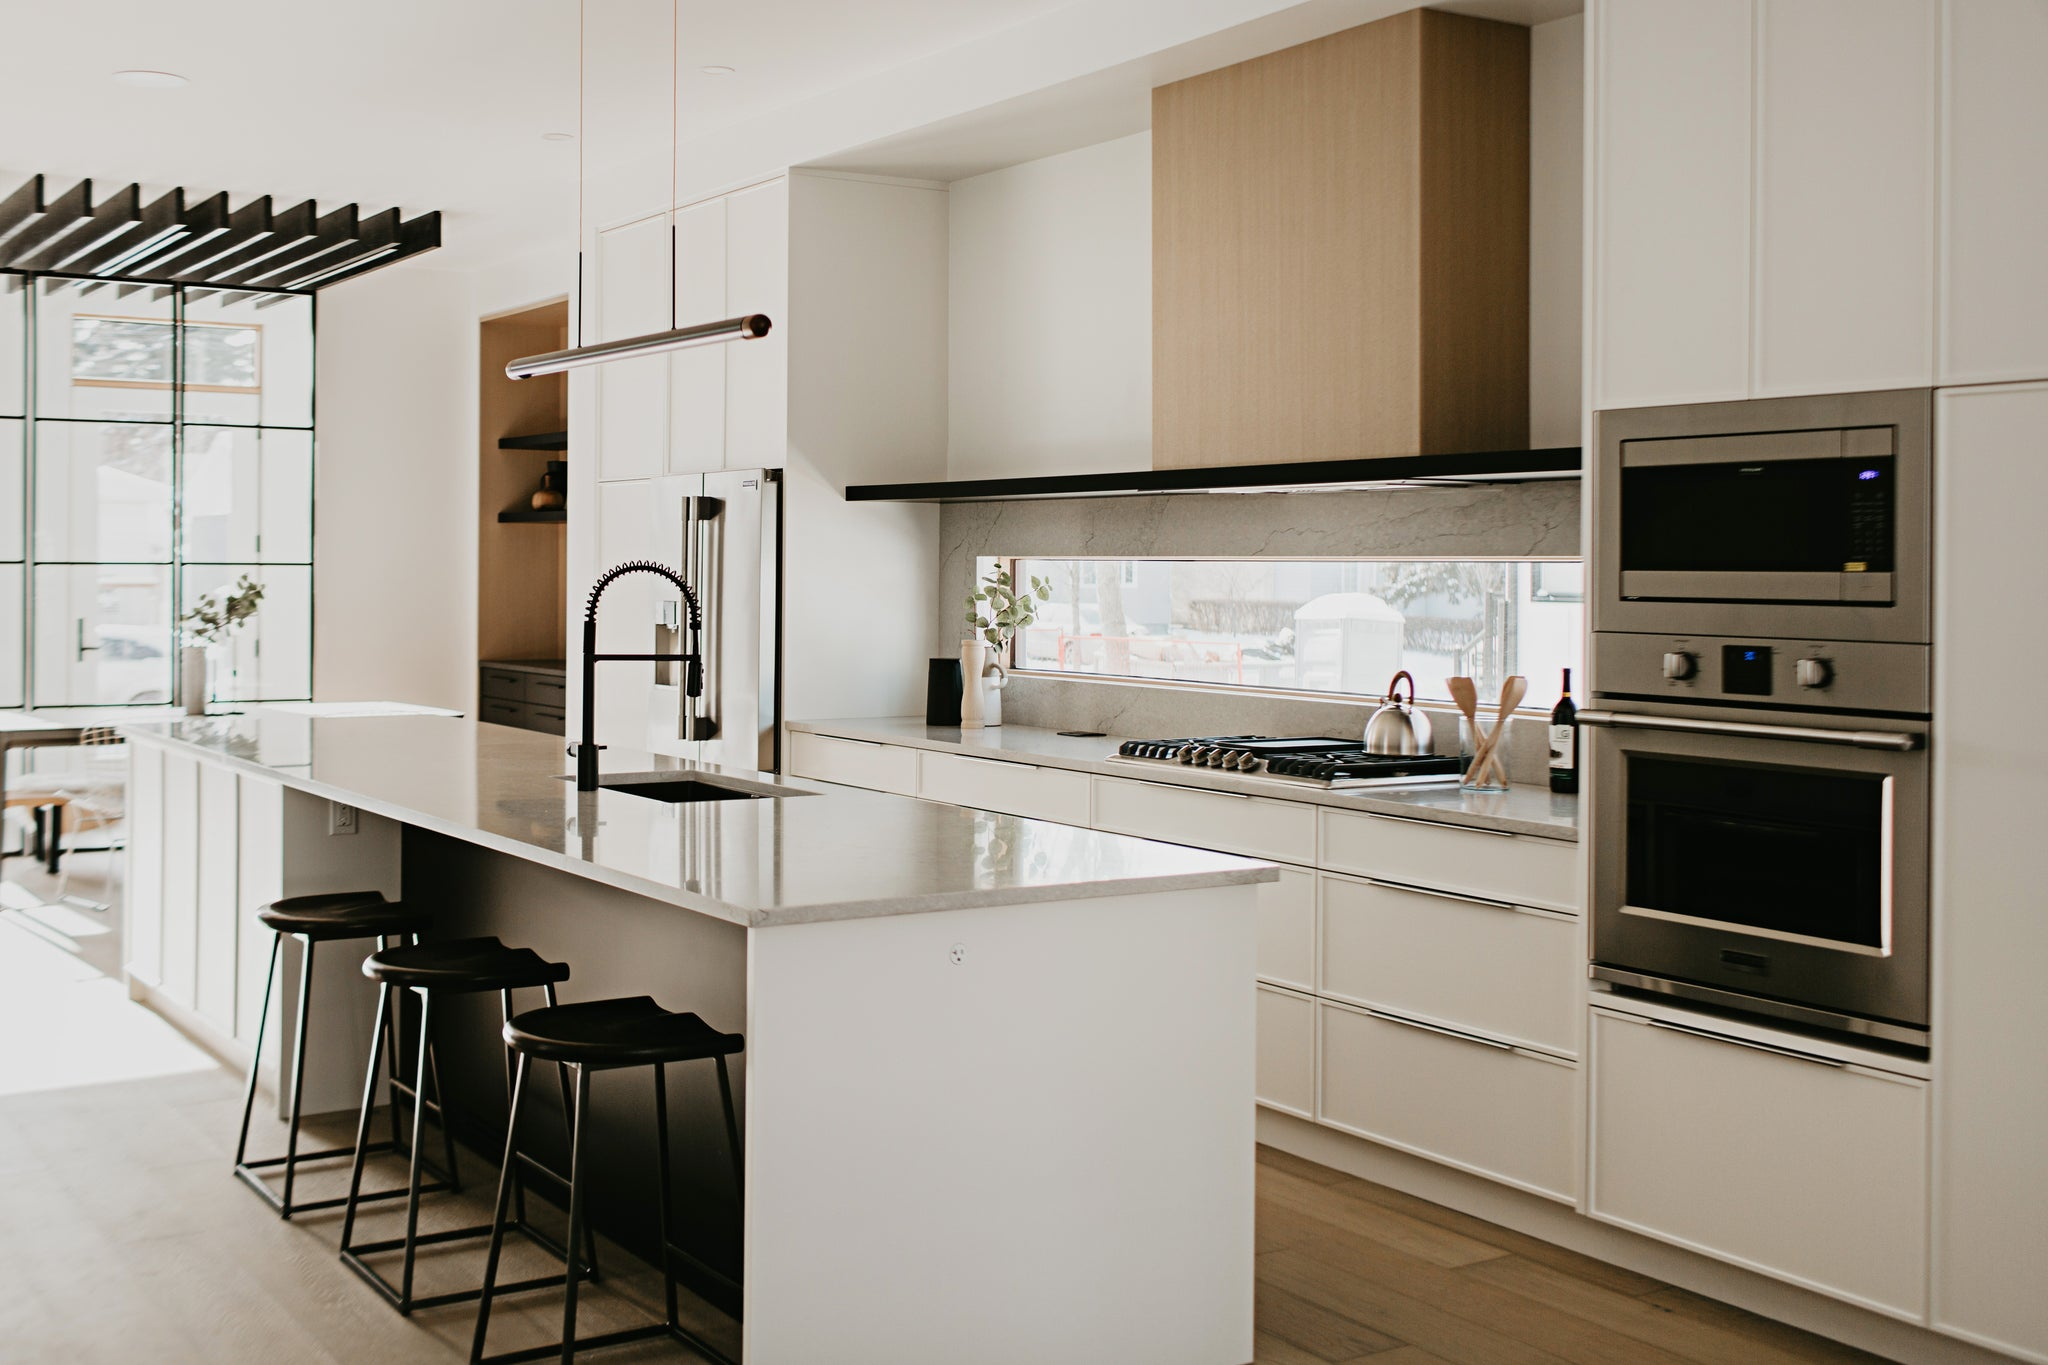 Nancy Surby from NAKO Design. Interior design firm based out of Calgary Alberta.